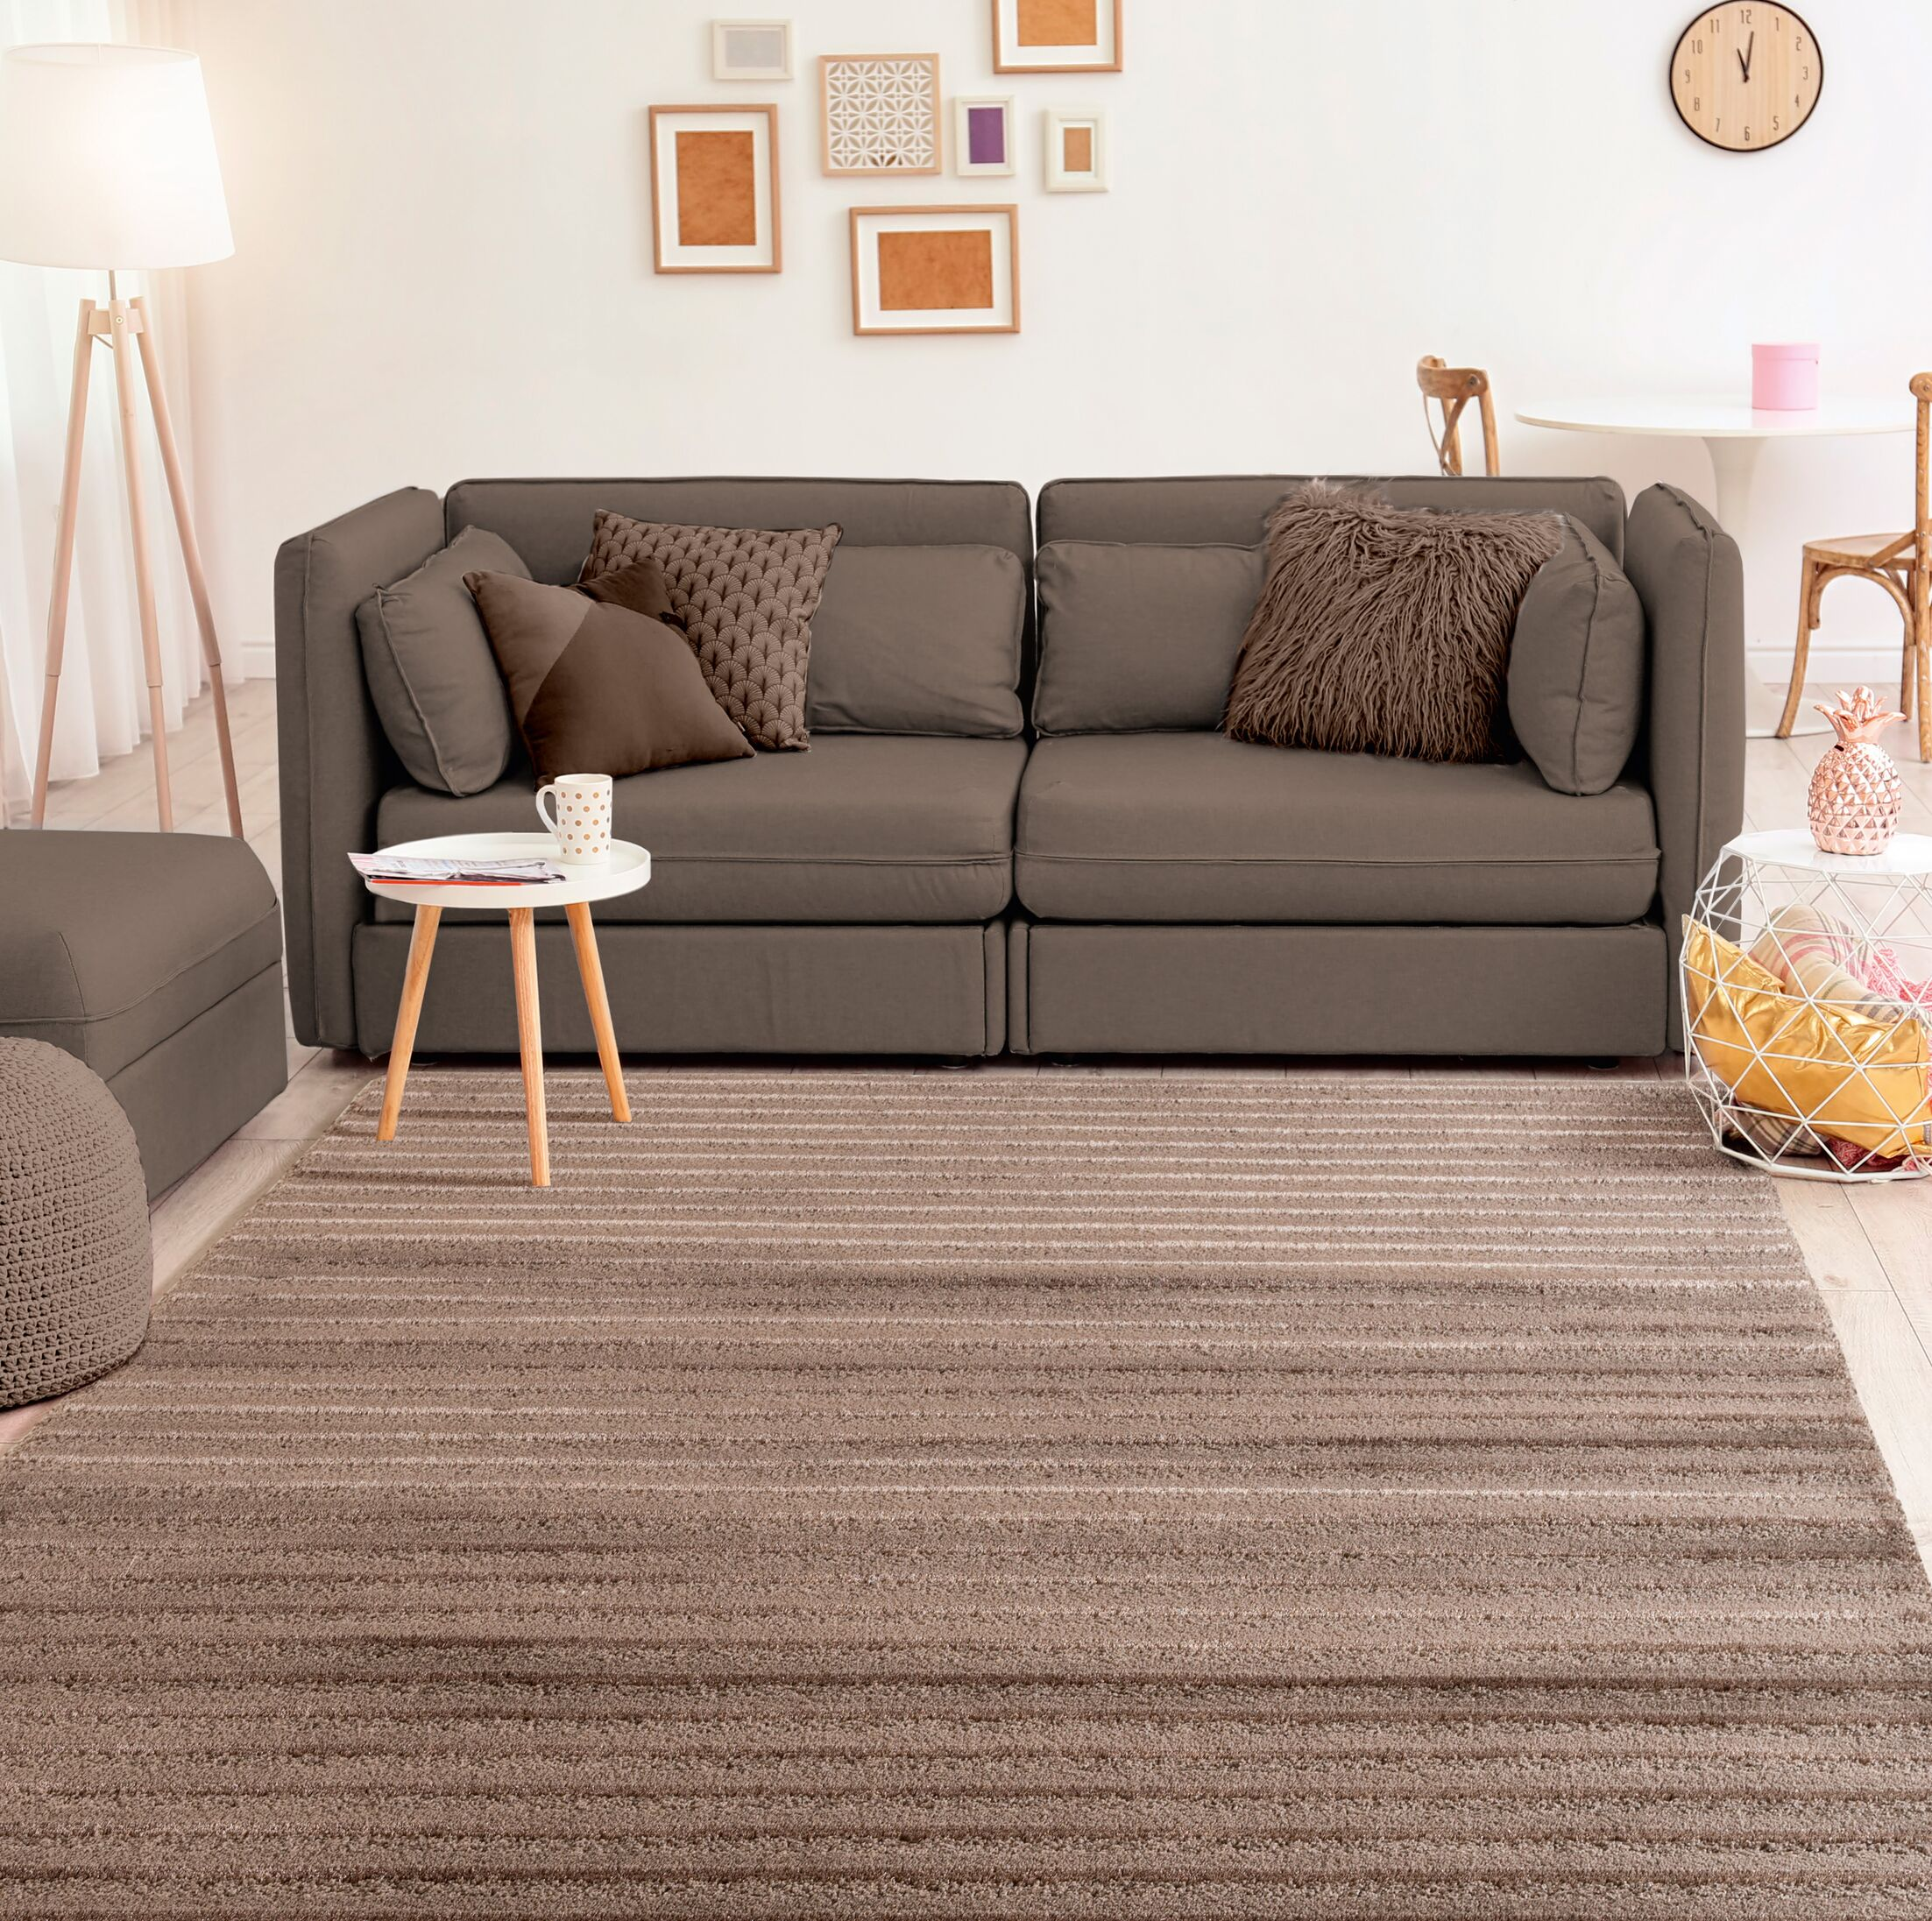 Ospina Accent Brown Area Rug Rug Size: Rectangle 1'10